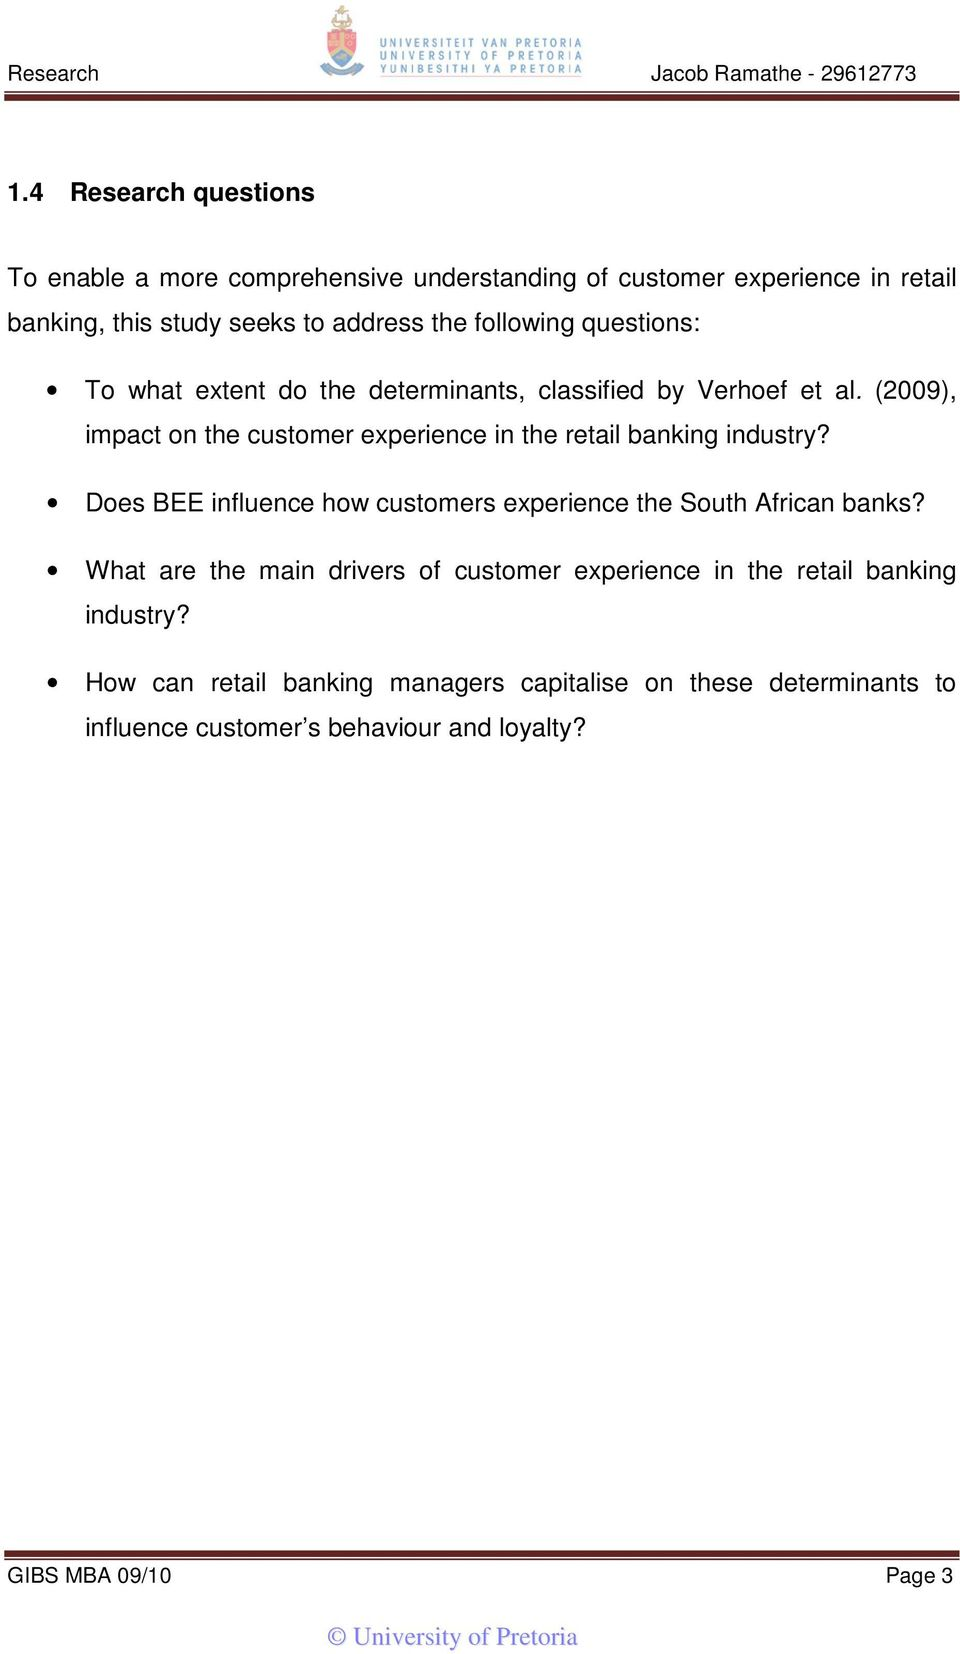 (2009), impact on the customer experience in the retail banking industry? Does BEE influence how customers experience the South African banks?